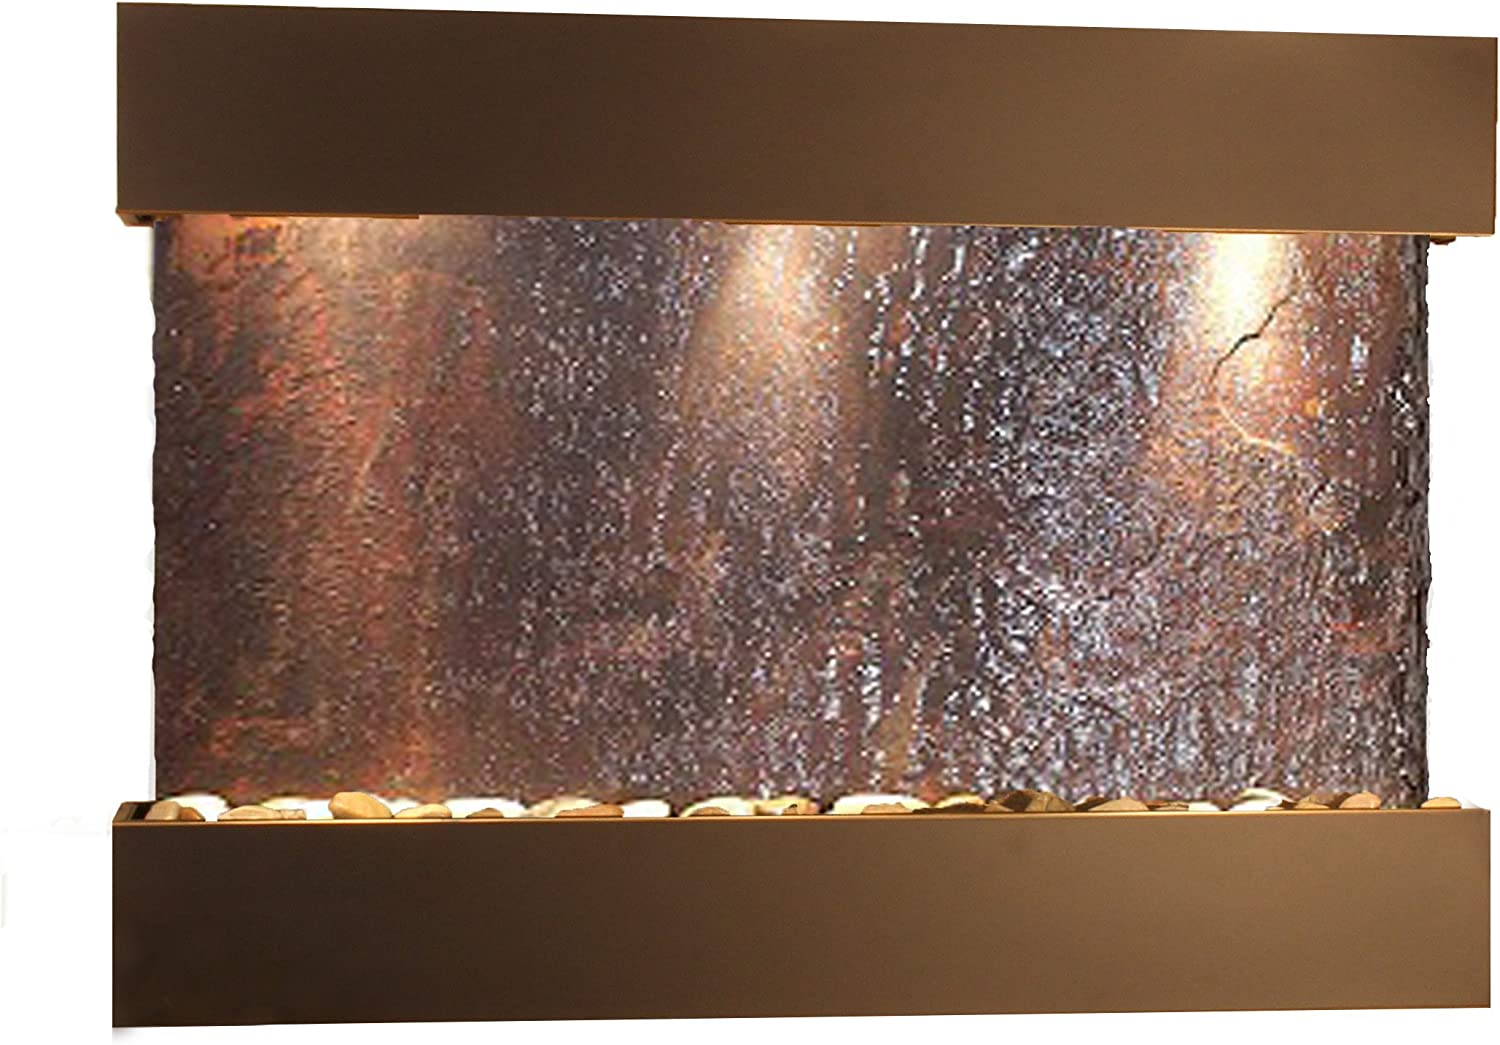 Reflection Creek Water Feature with Blackened Copper Trim and Square Edges (Natural Multi-Color Slate): Home & Kitchen